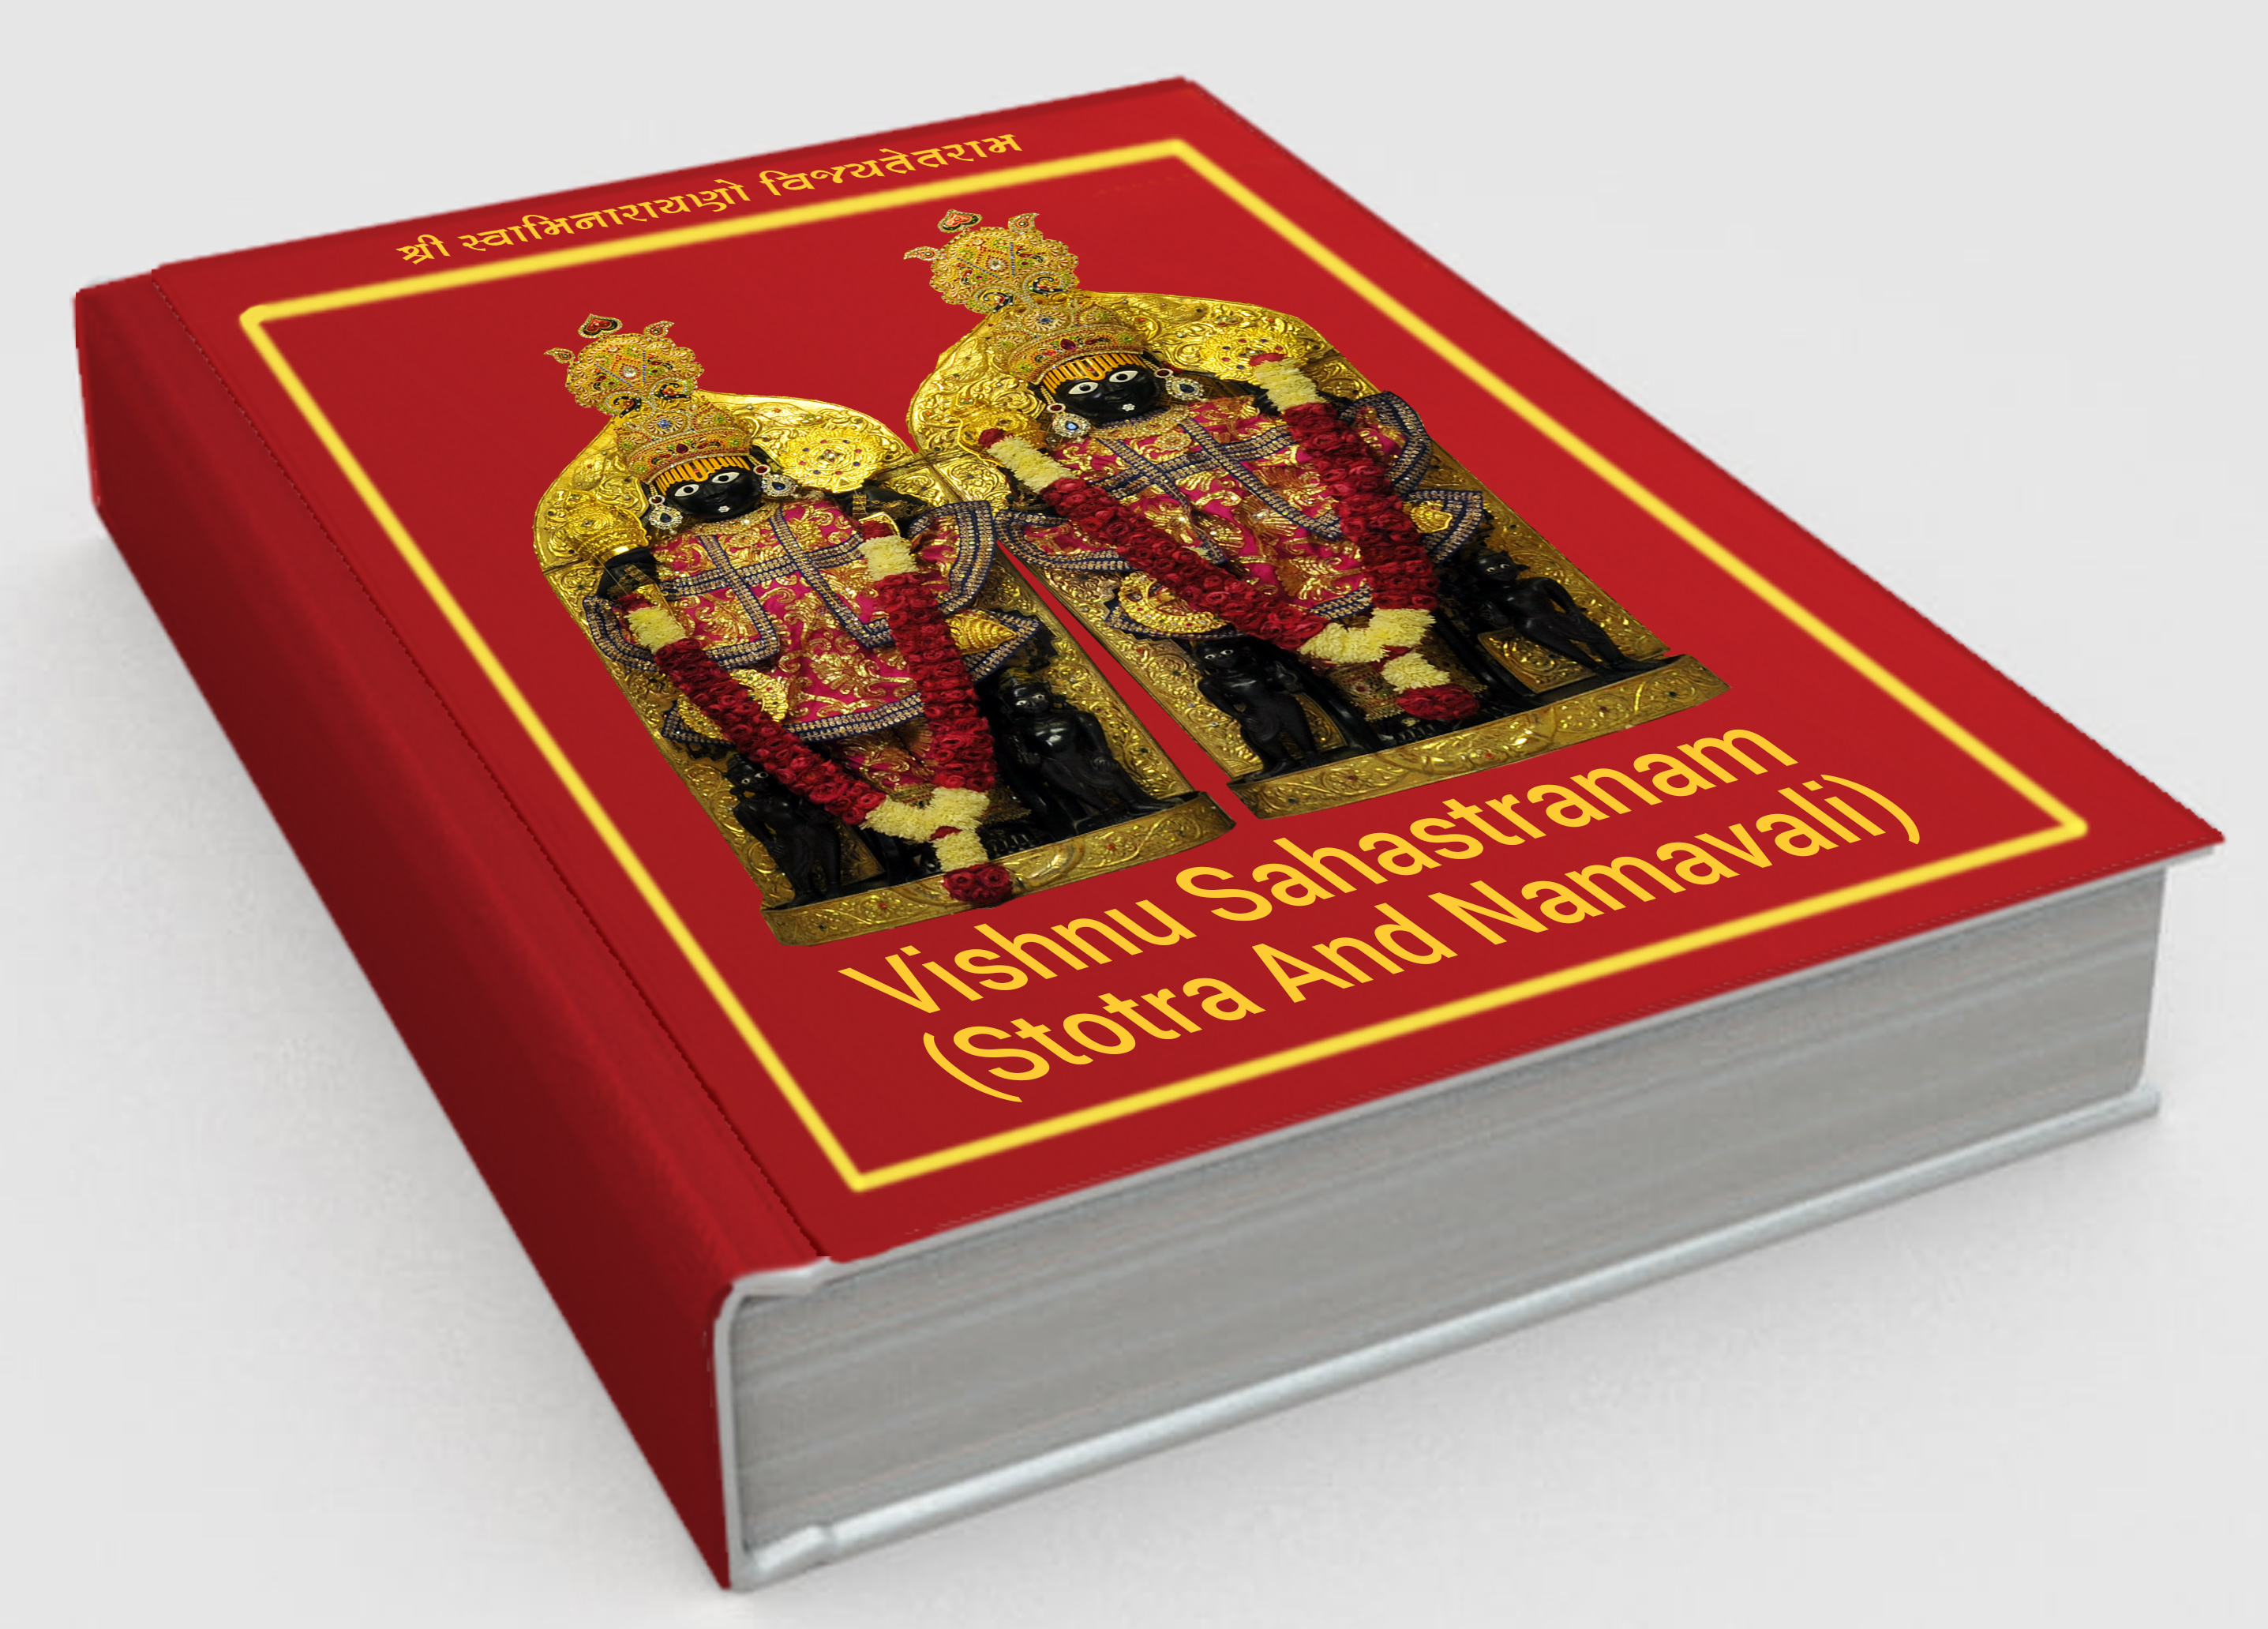 Cover of Vishnu Sahastranam (Stotra And Namavali) + Meanings